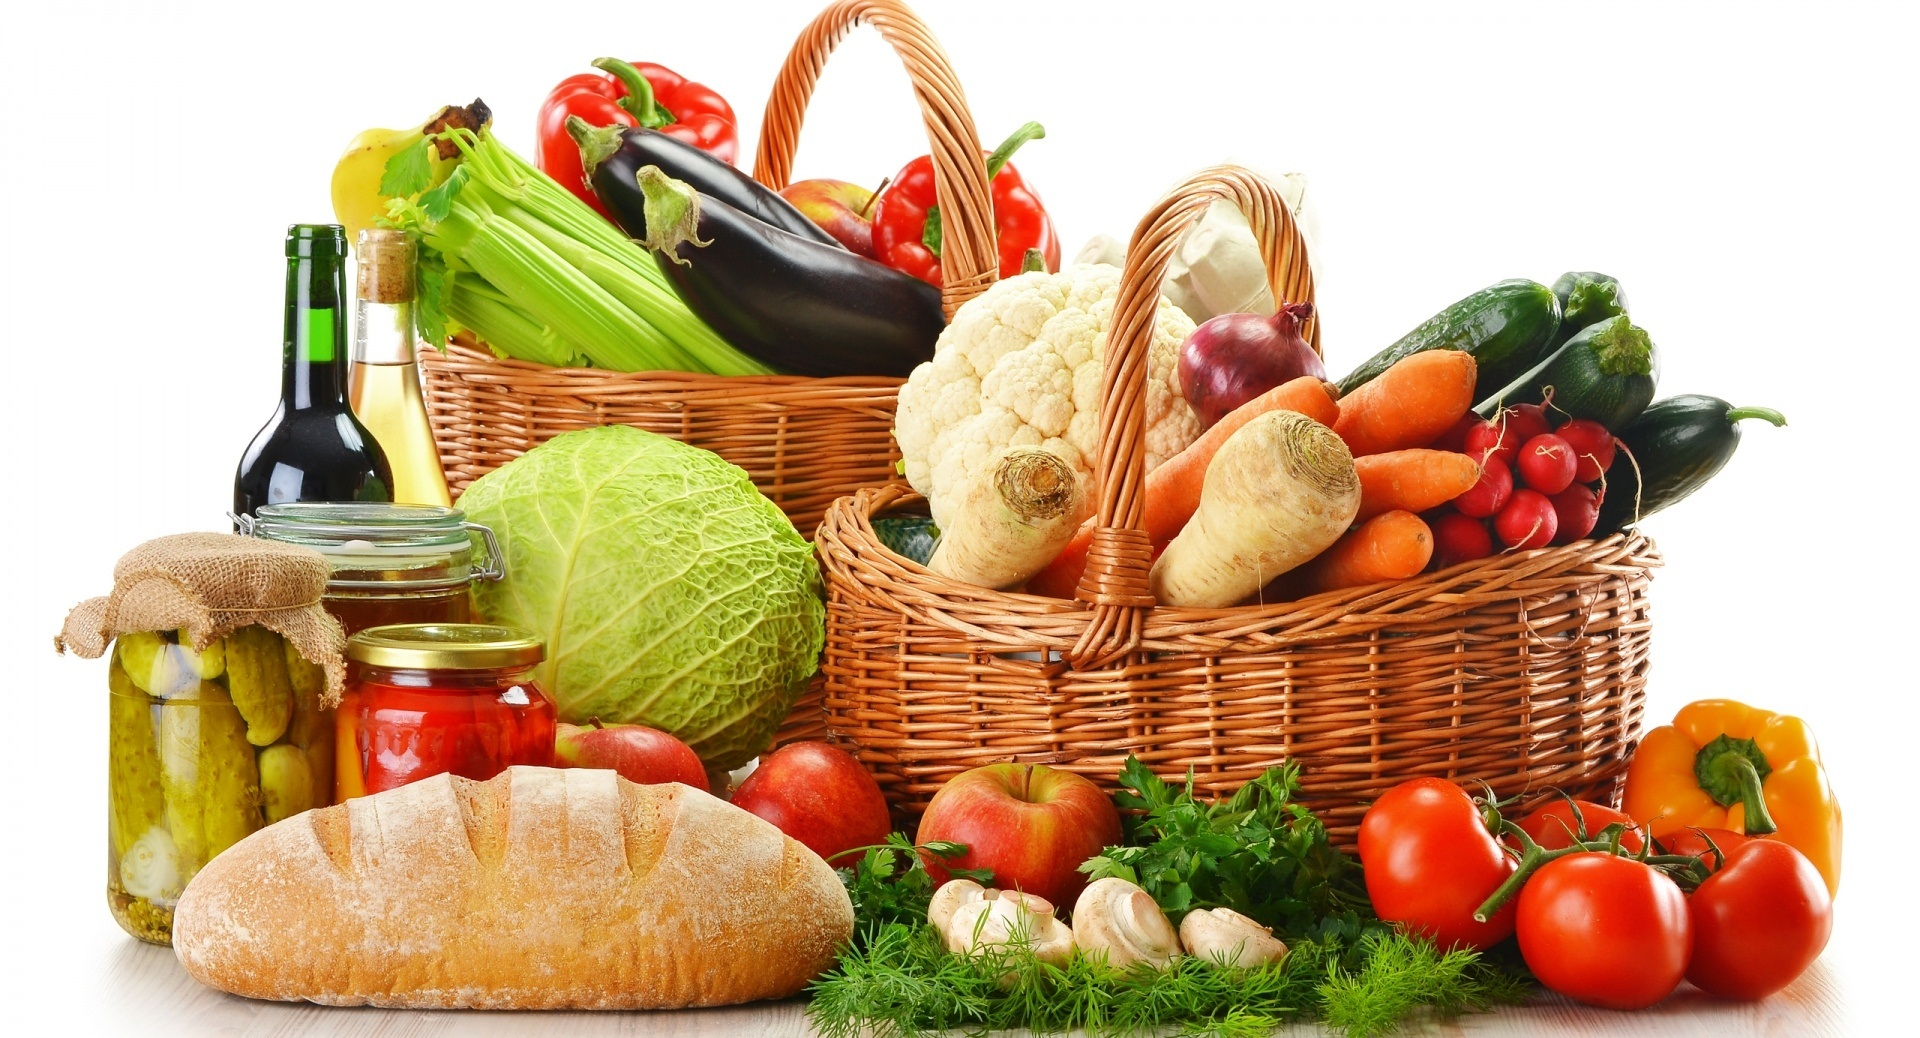 Healthy Food in the Baskets 399.82 Kb